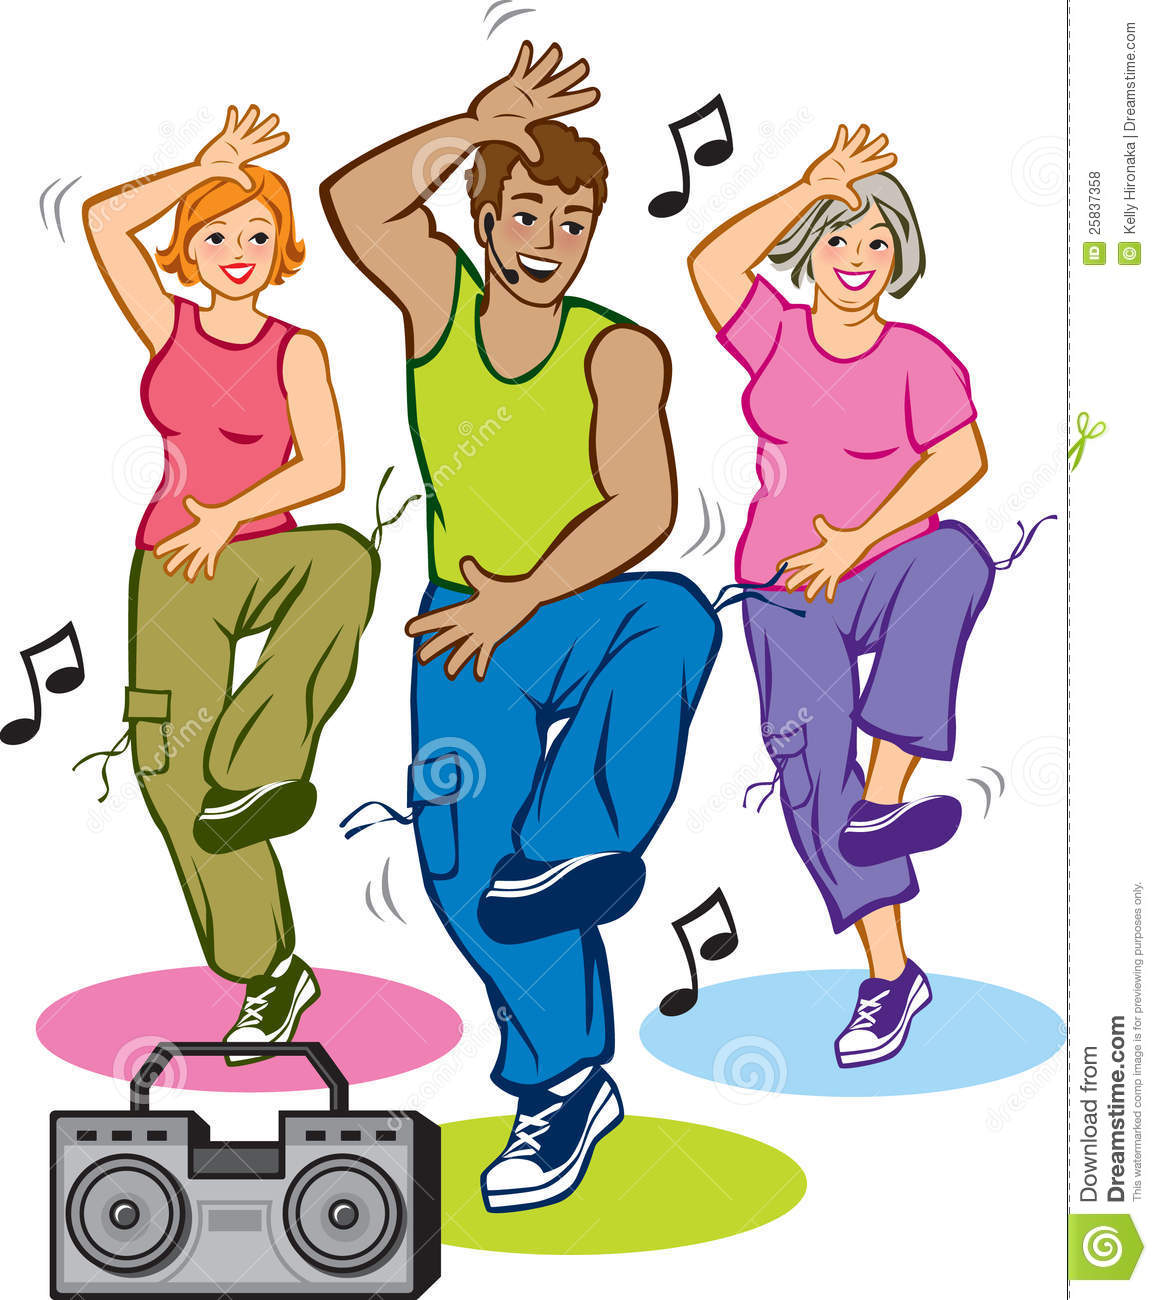 Dance Exercise Clipart.